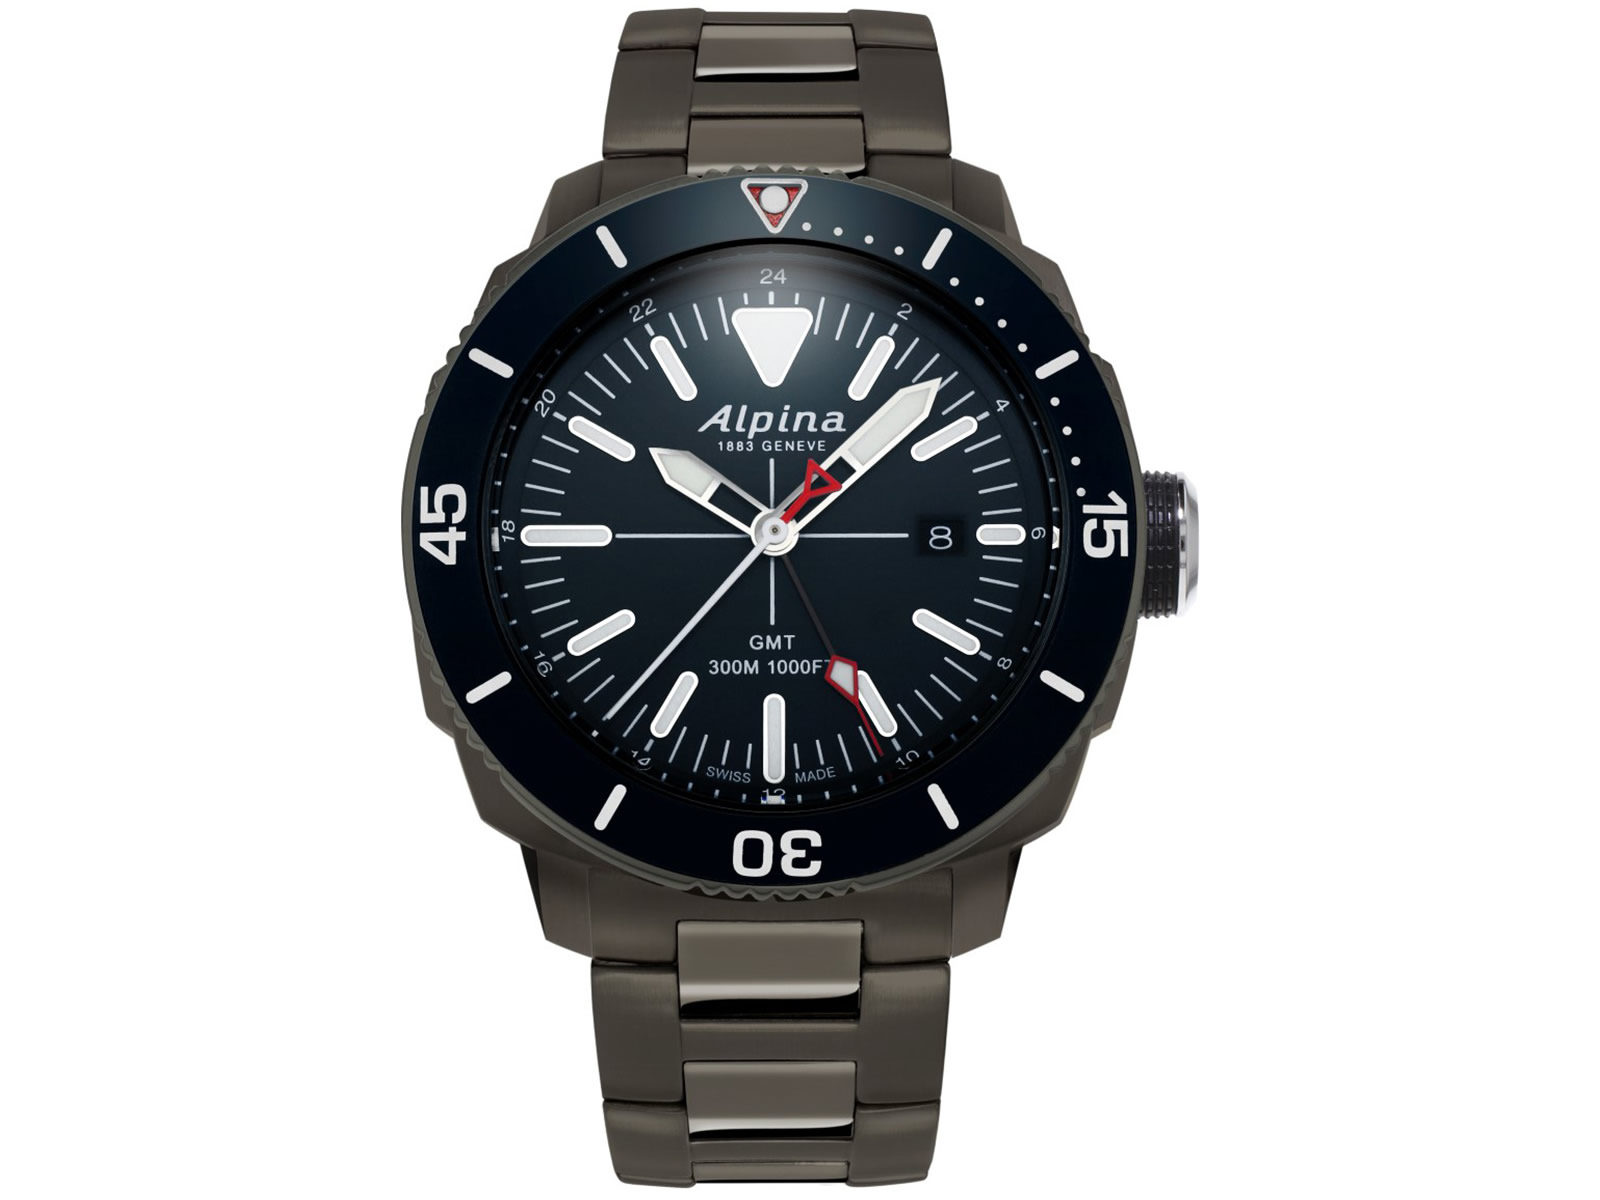 alpina-seastrong-diver-gmt-quartz-6-.jpg